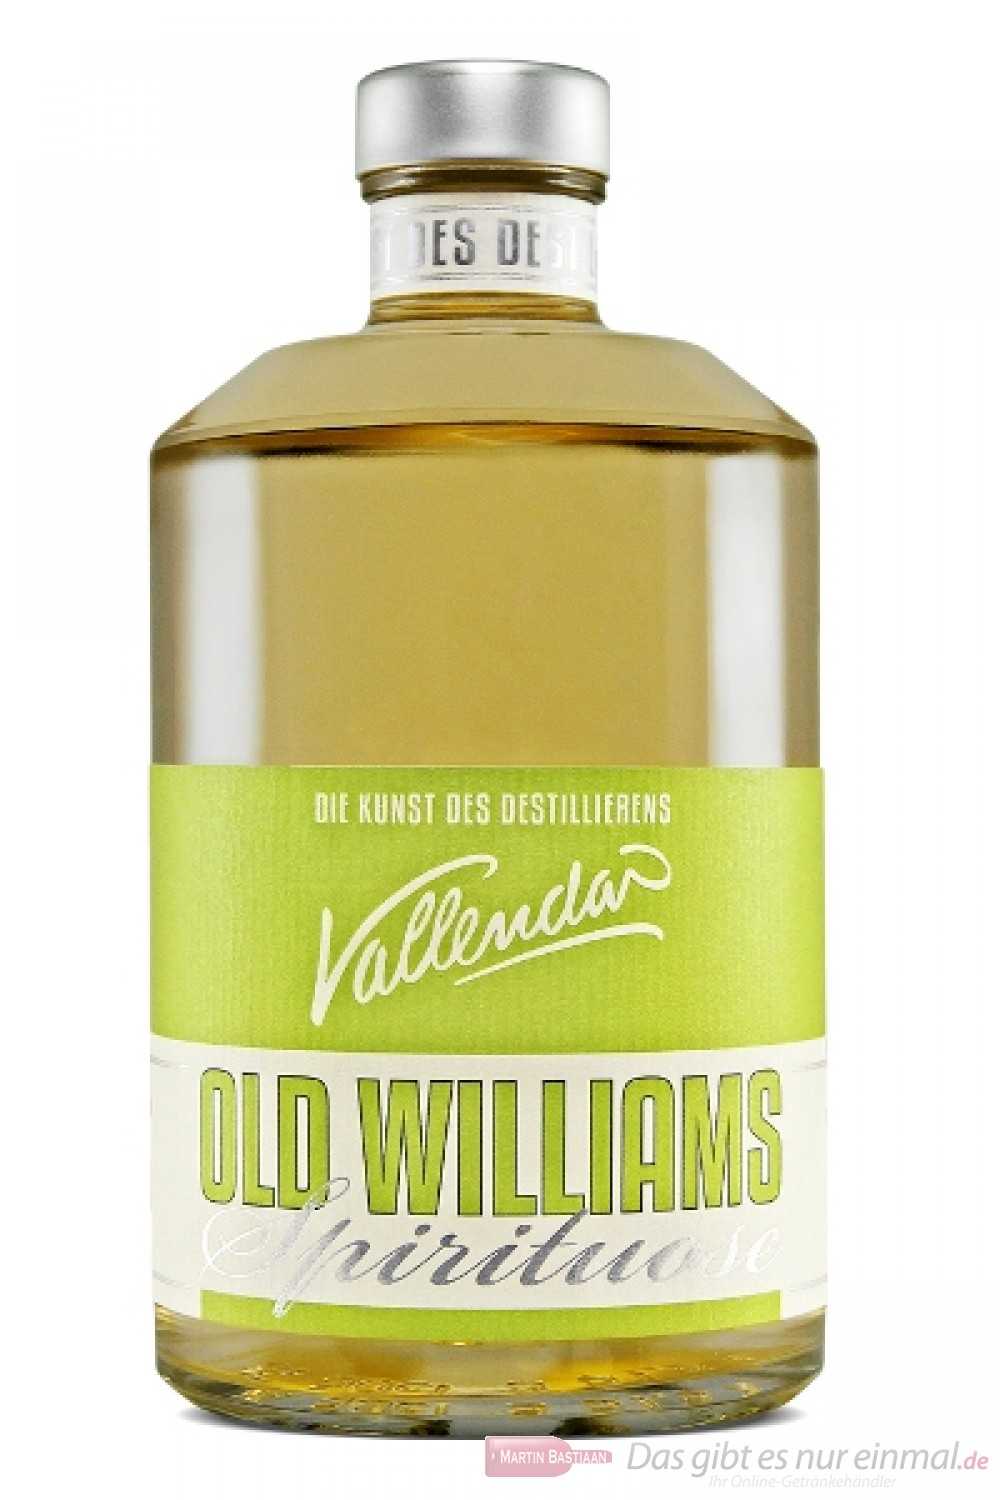 Vallendar Old Williams